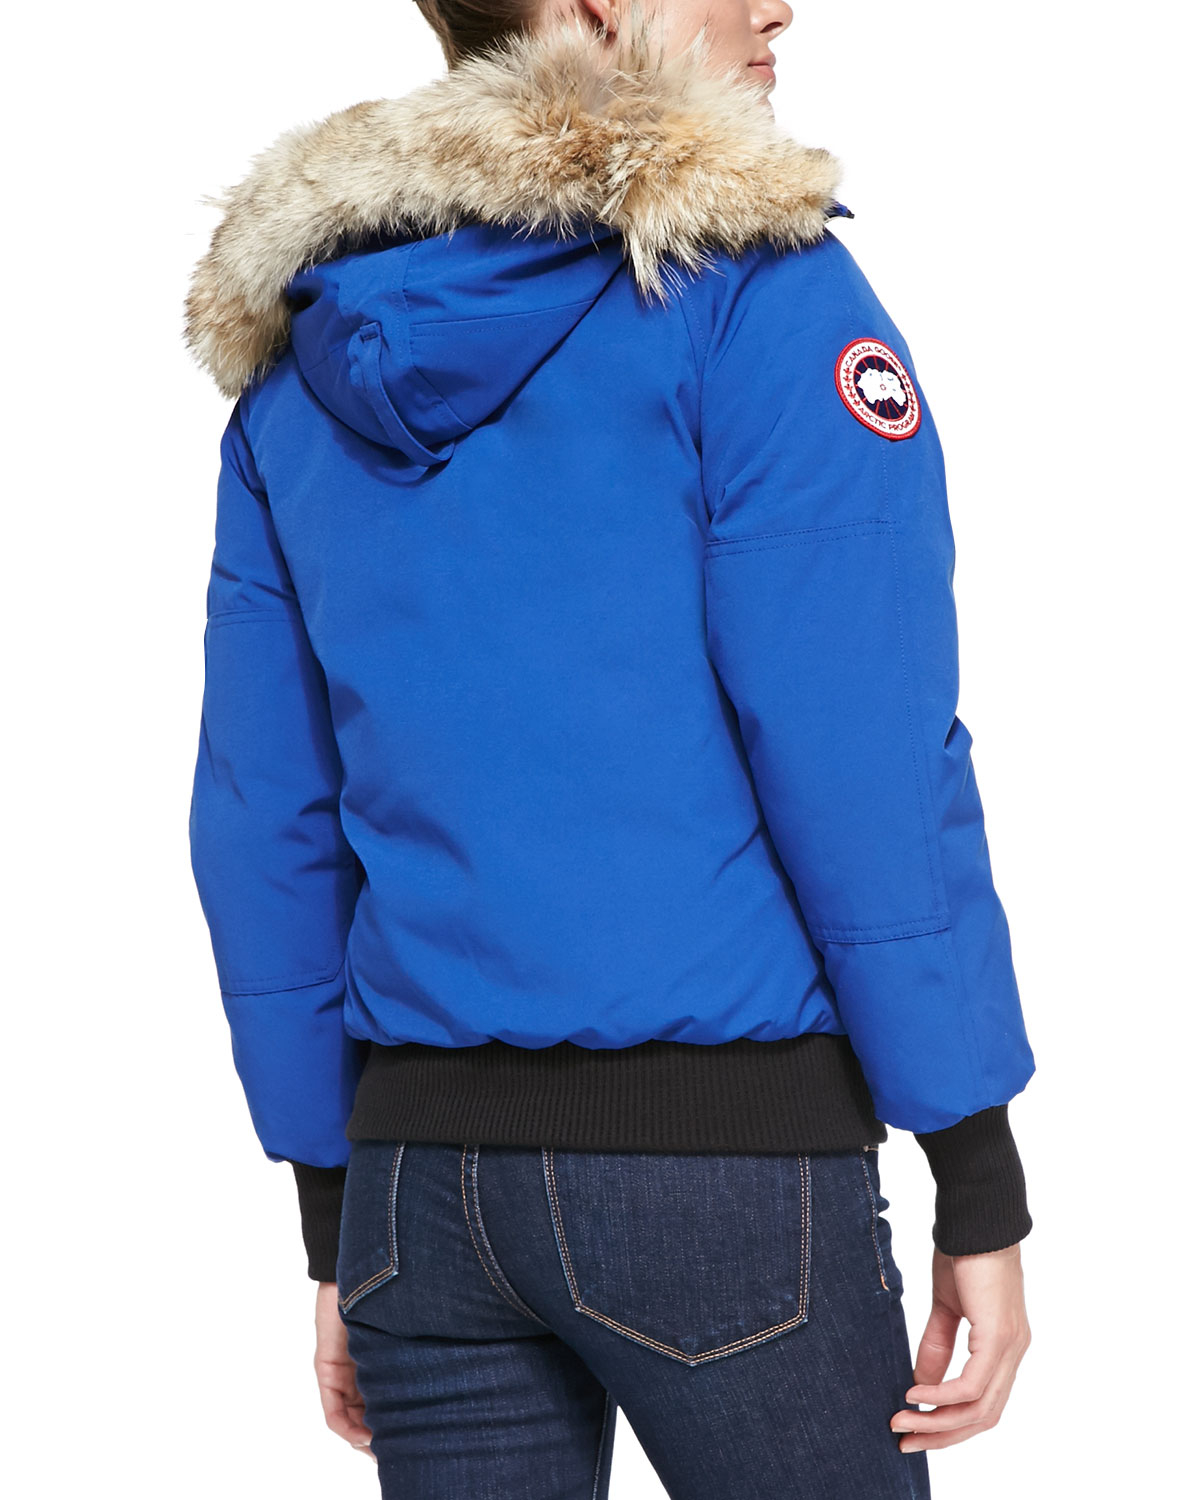 Canada Goose Chilliwack Bomber Jacket With Fur Hood In